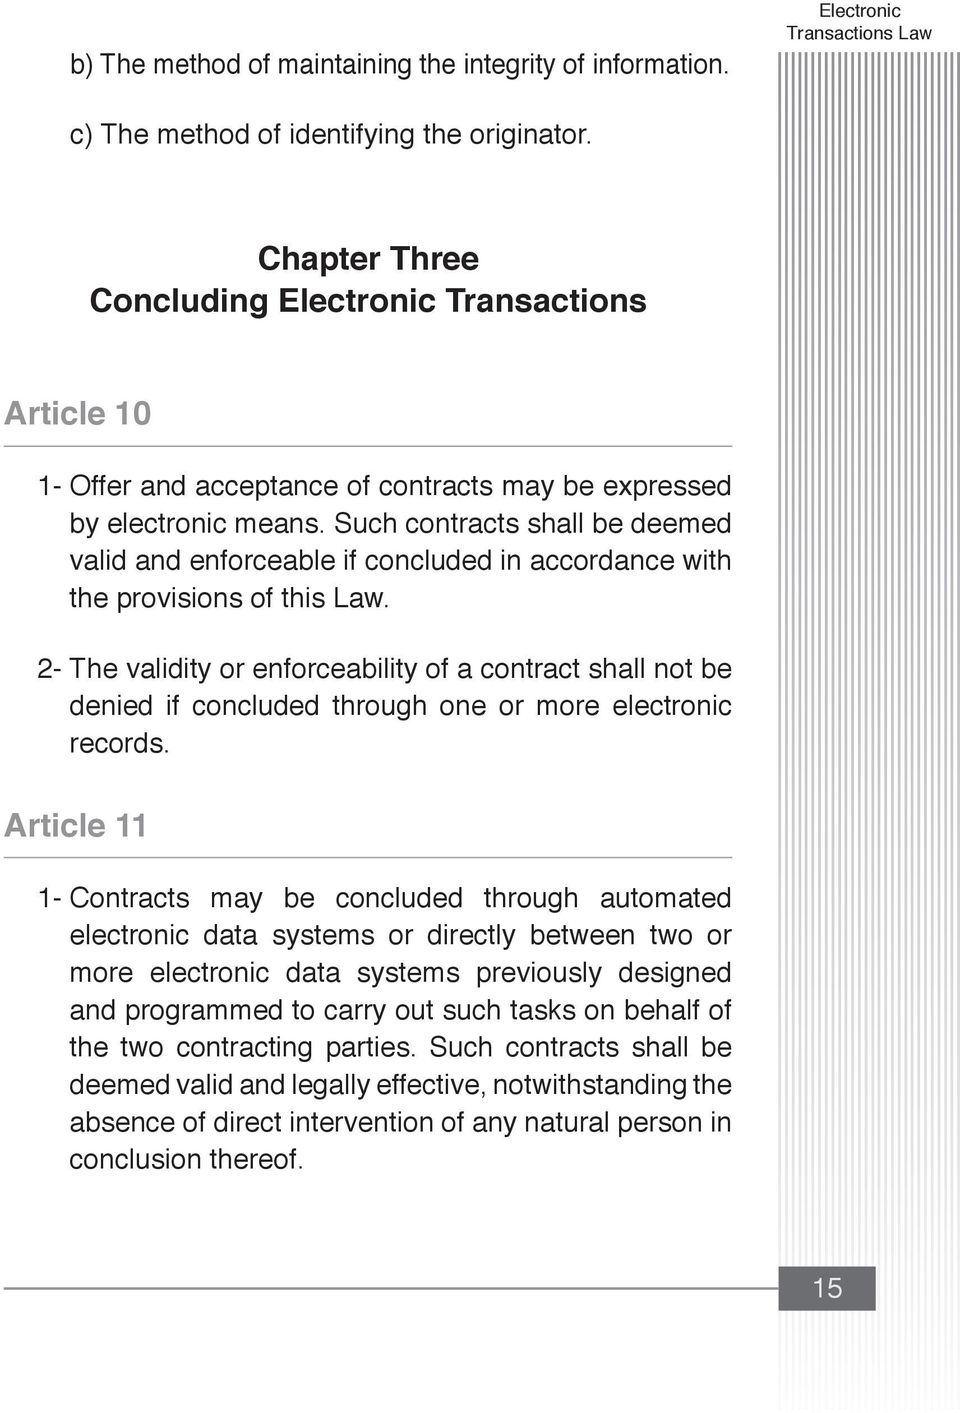 Such contracts shall be deemed valid and enforceable if concluded in accordance with the provisions of this Law.